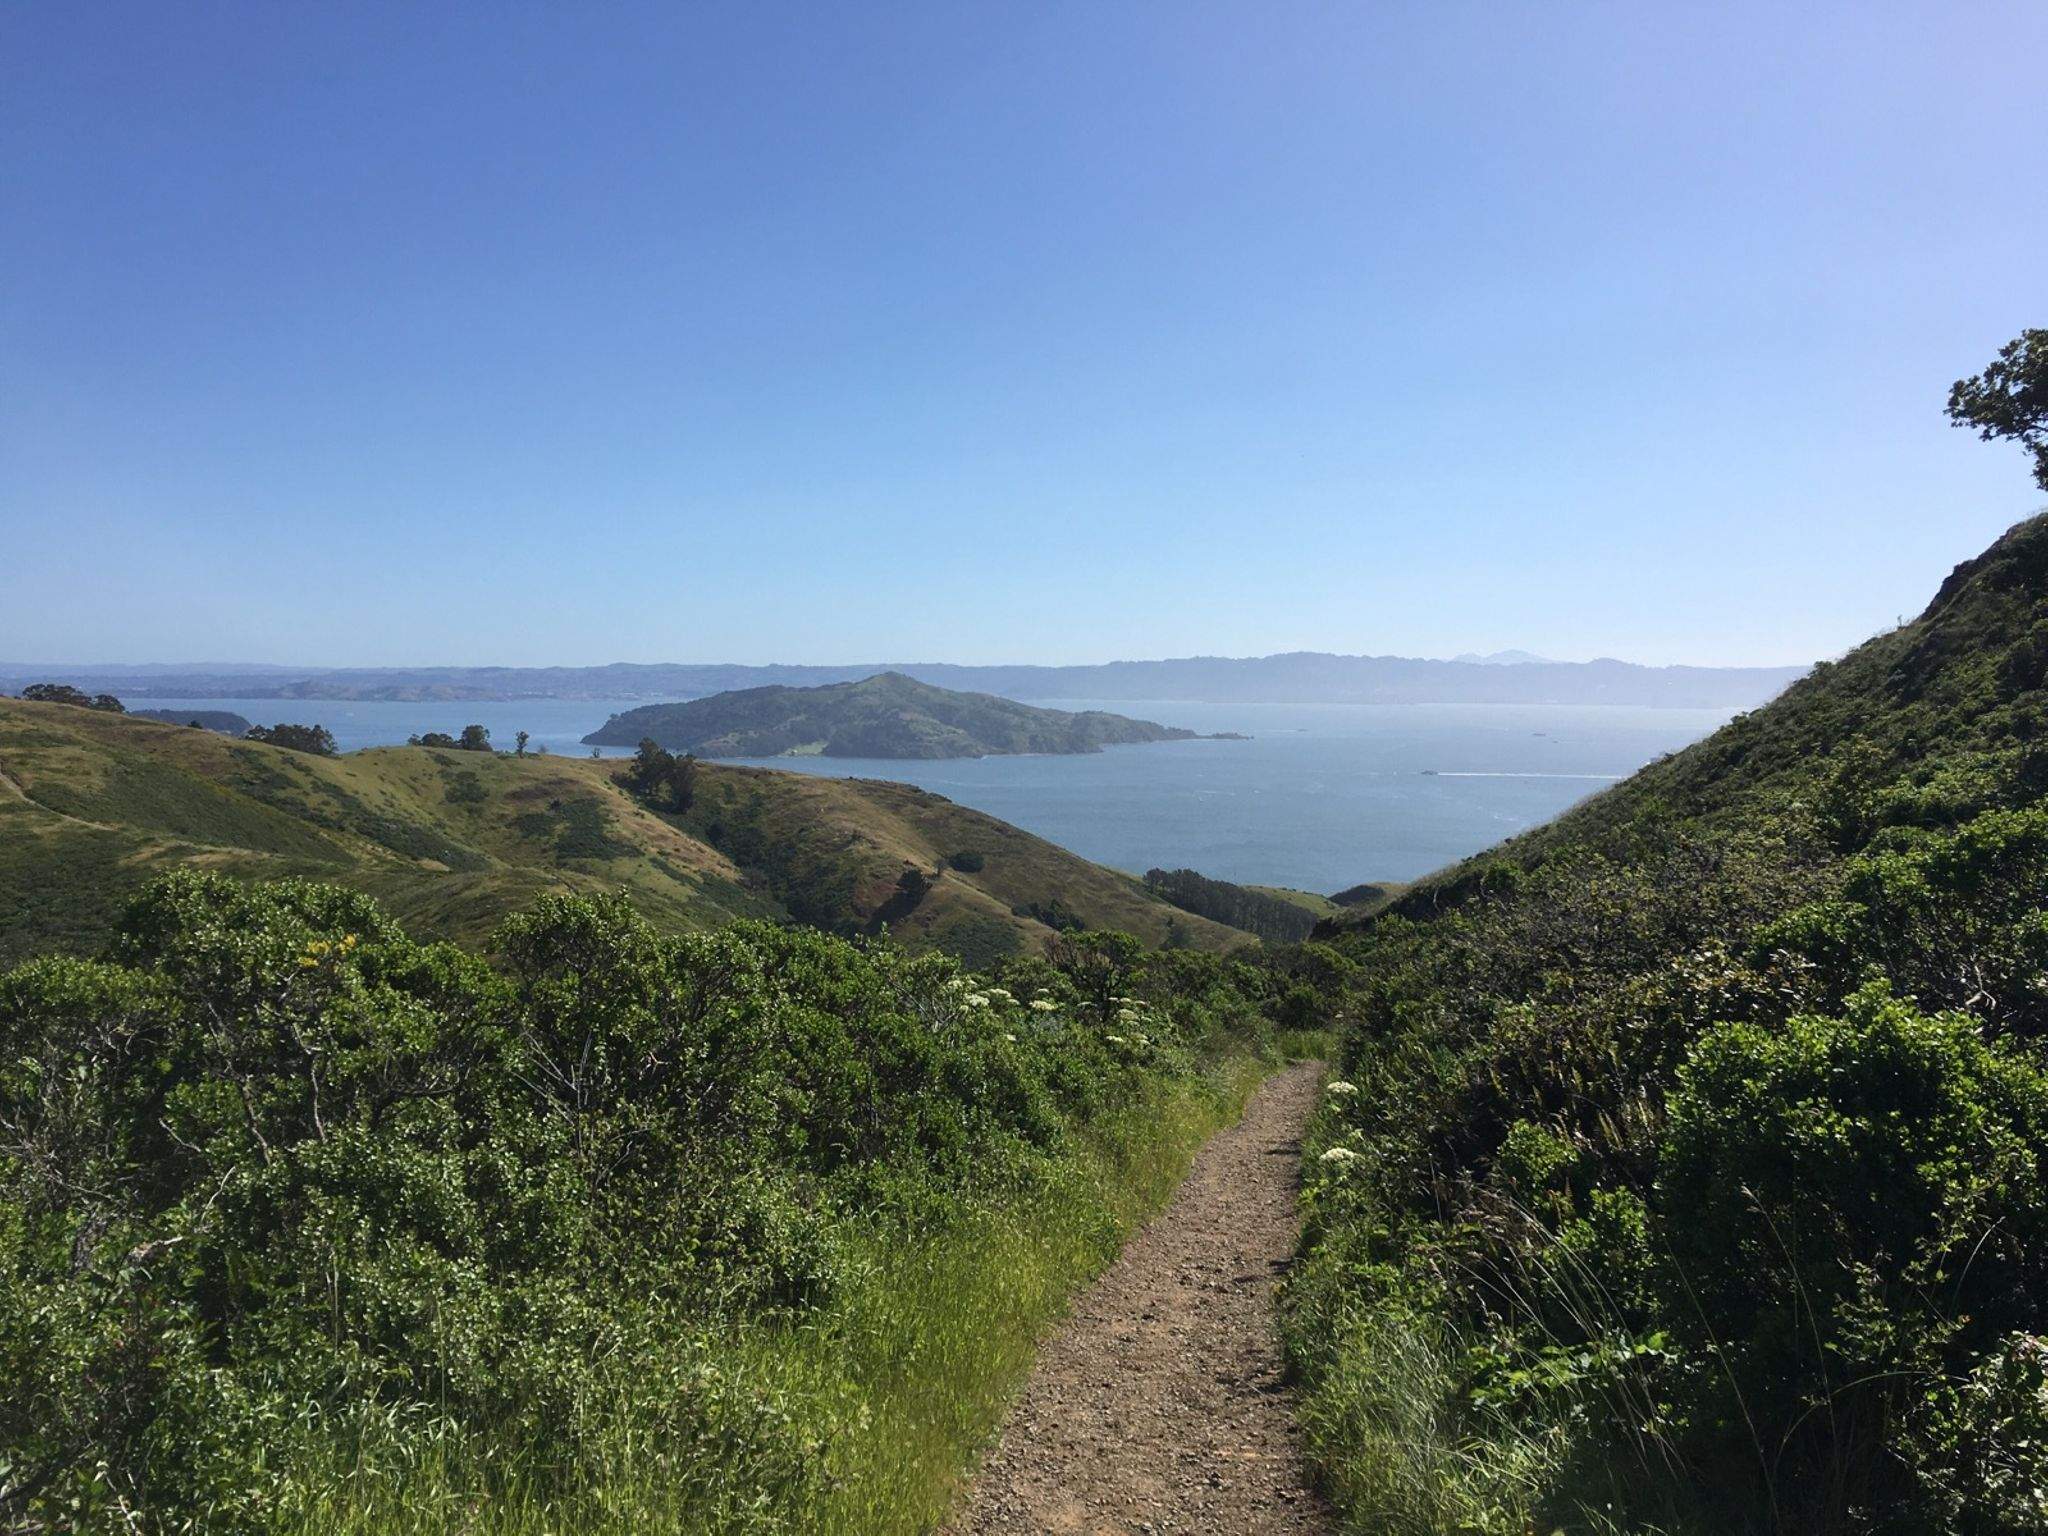 The trail back to SF